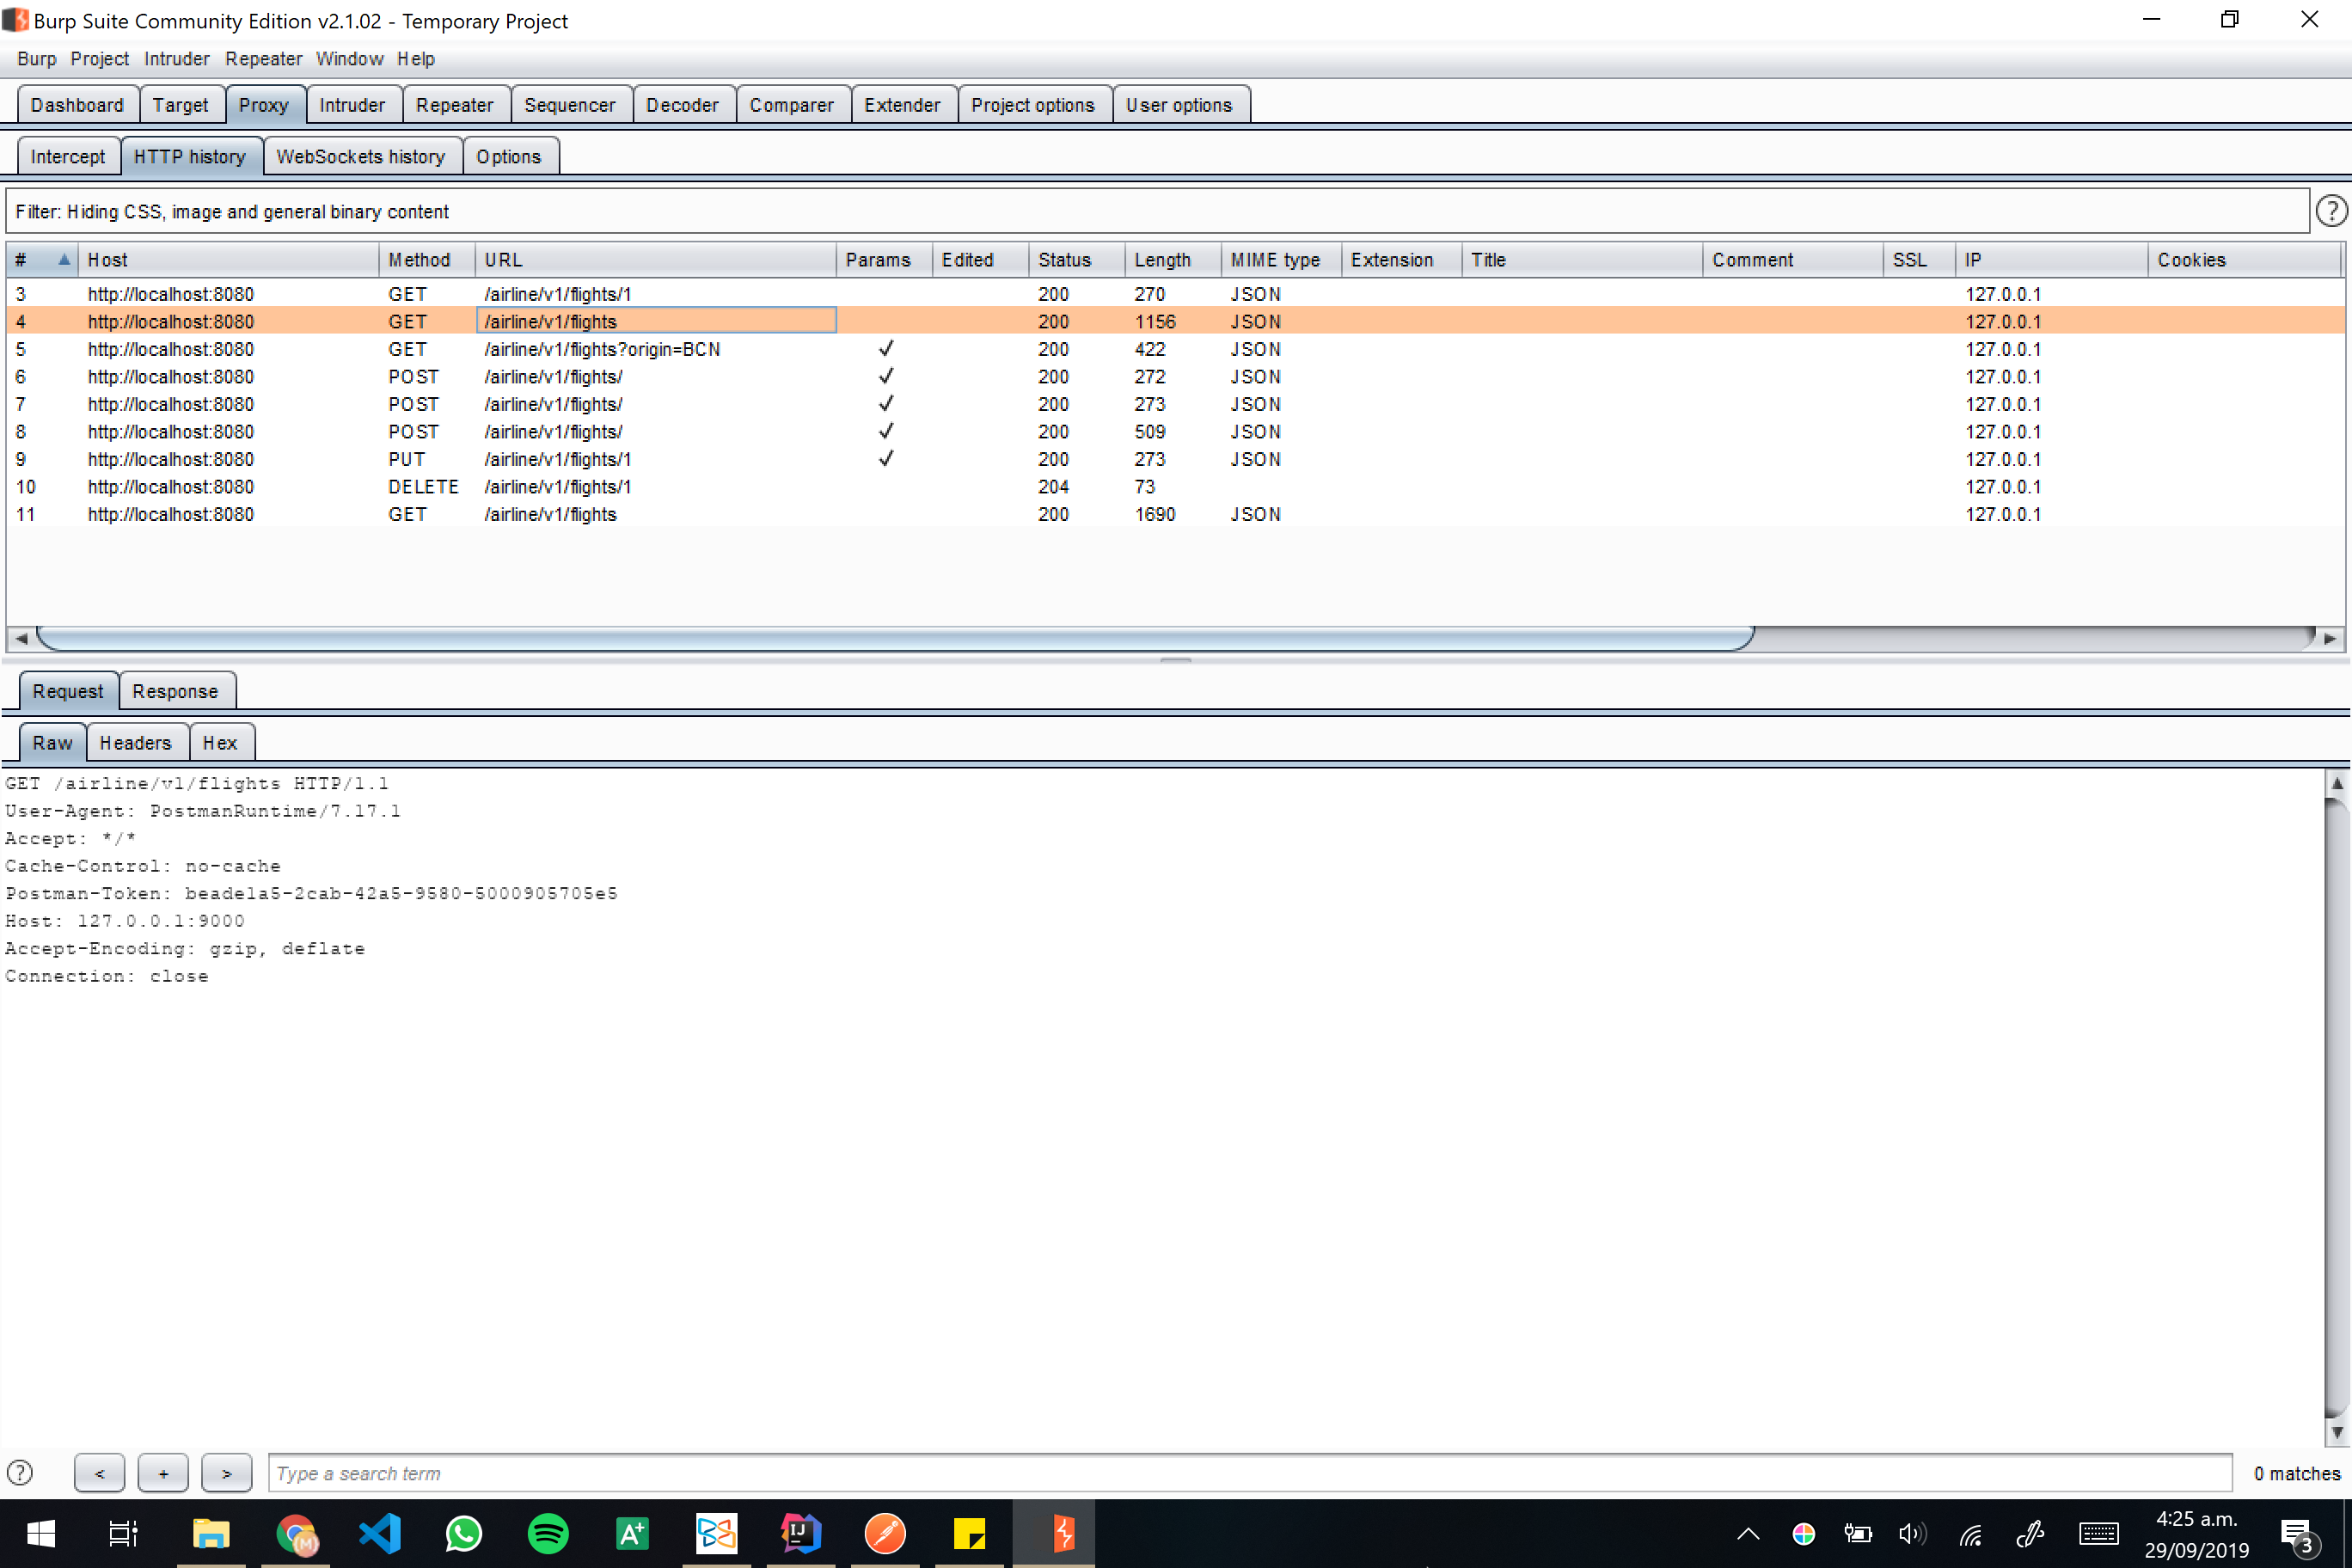 Burp screenshot 07